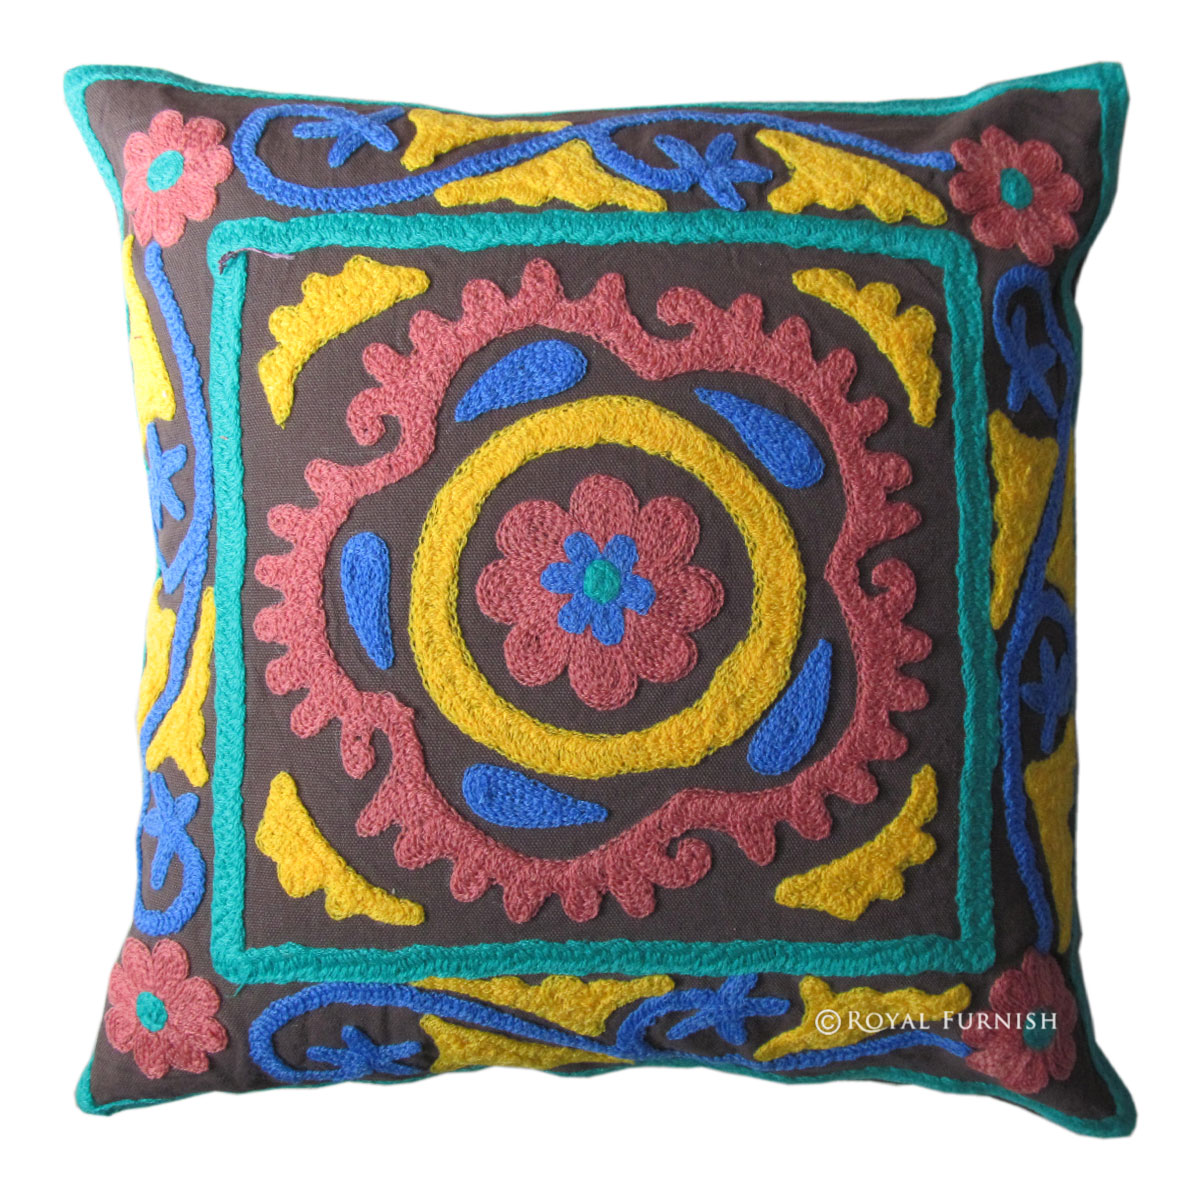 16x16 Decorative Suzani Embroidered Throw Accent Floral Pillow Cover - RoyalFurnish.com